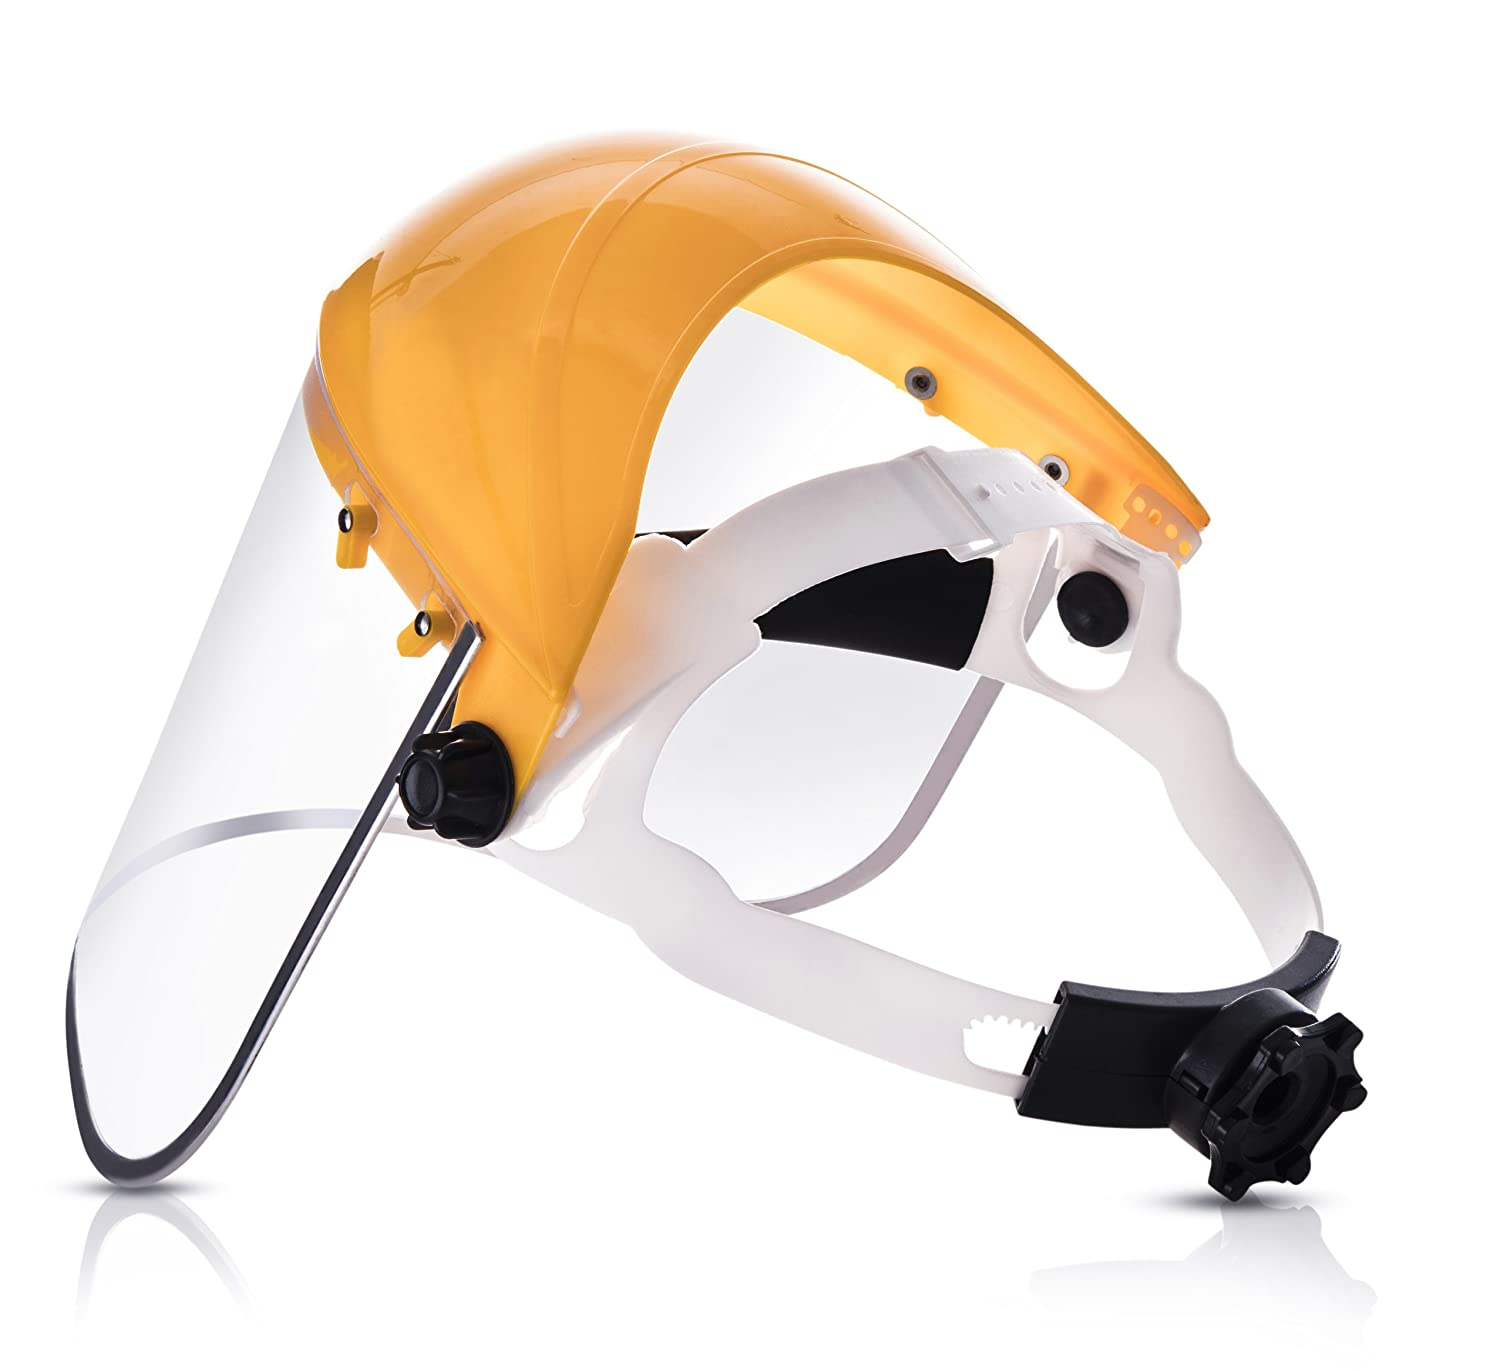 Clear Full Face Shield Visor Mask – Face And Head Coverage- Ideal For Automotive, Construction, General Manufacturing, Mining, Oil/Gas Uses – By Katzco